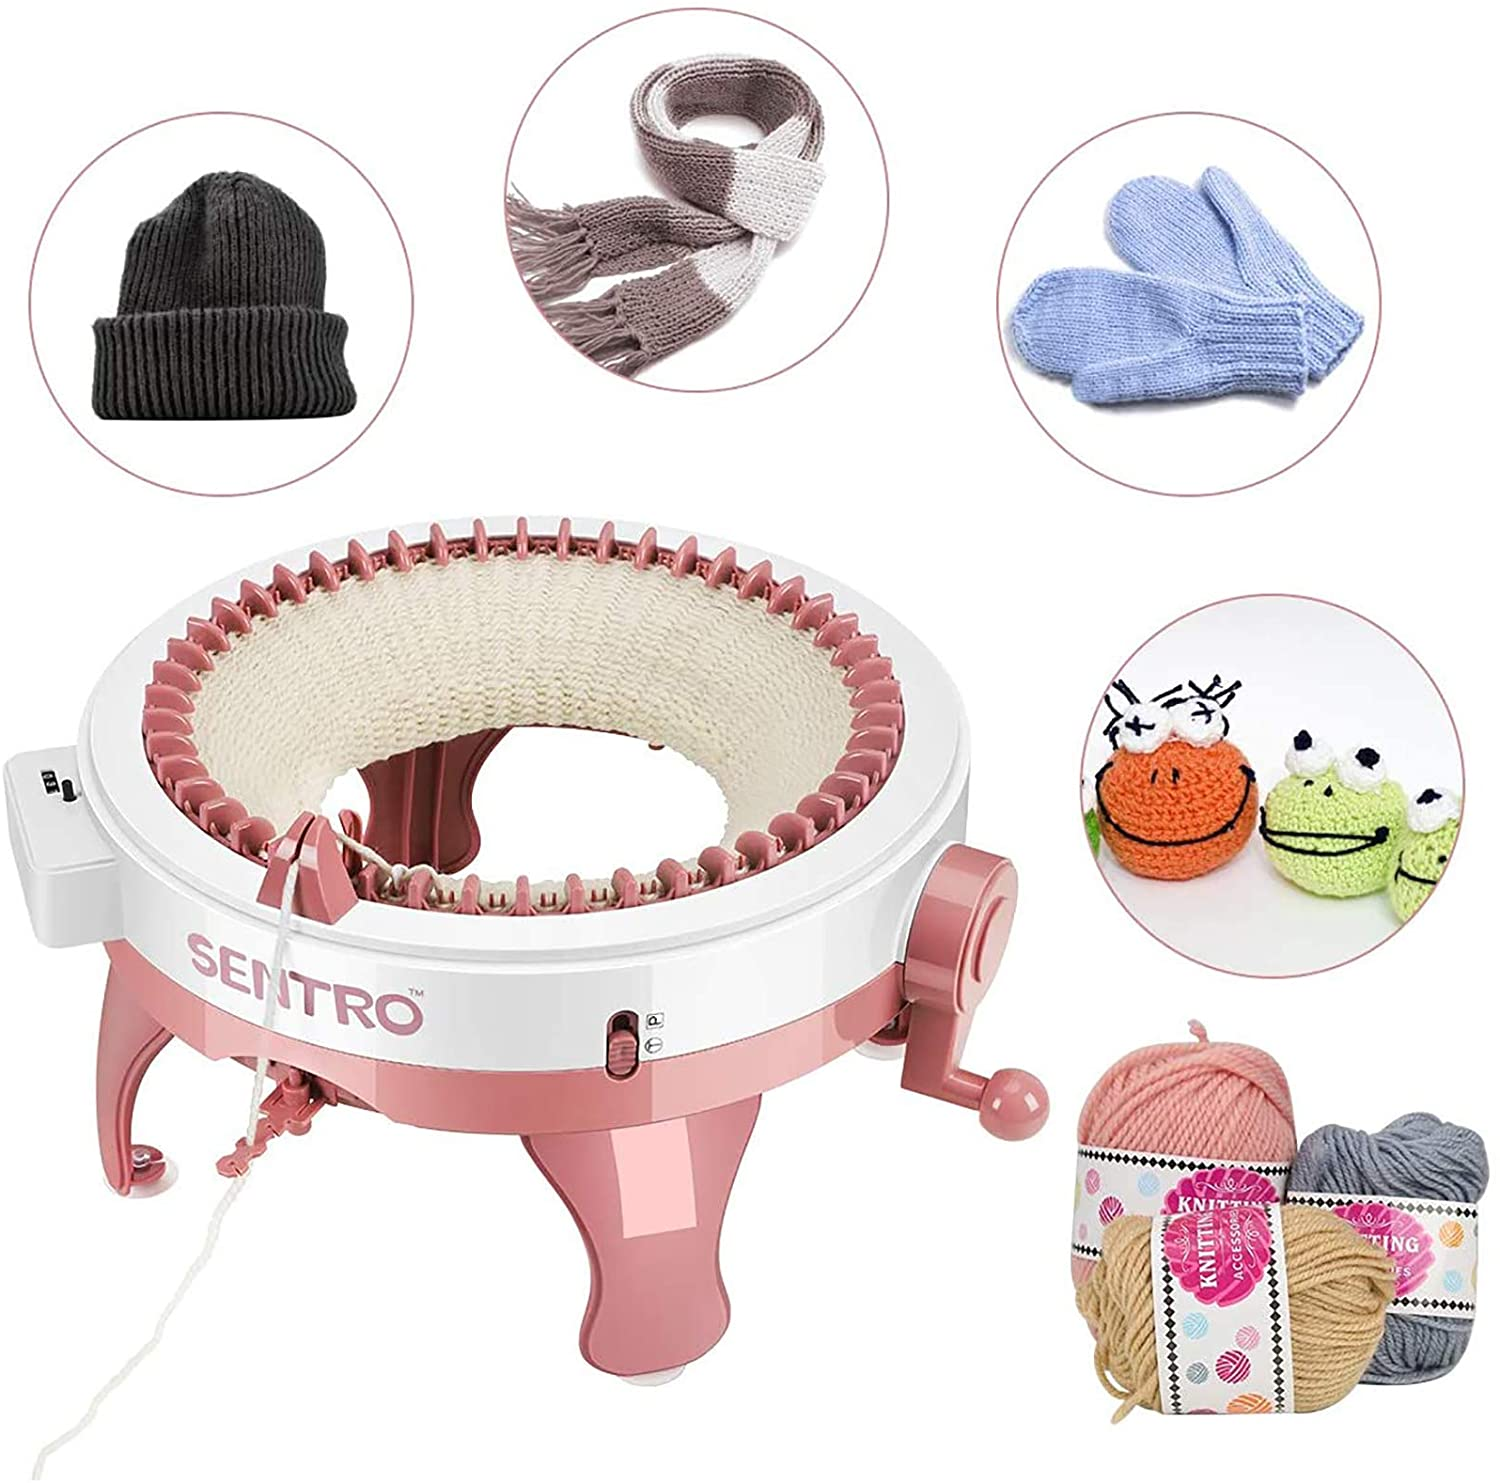 22//40//48 Needles Knit Loom Machine with Row Counter Knitting Machine Smart Weaver Knit Round Loom for Adults Kids DIY Knit Scarf Hat Sock 22 Needles Pink Knit Plate Rotary Double Knit Machine